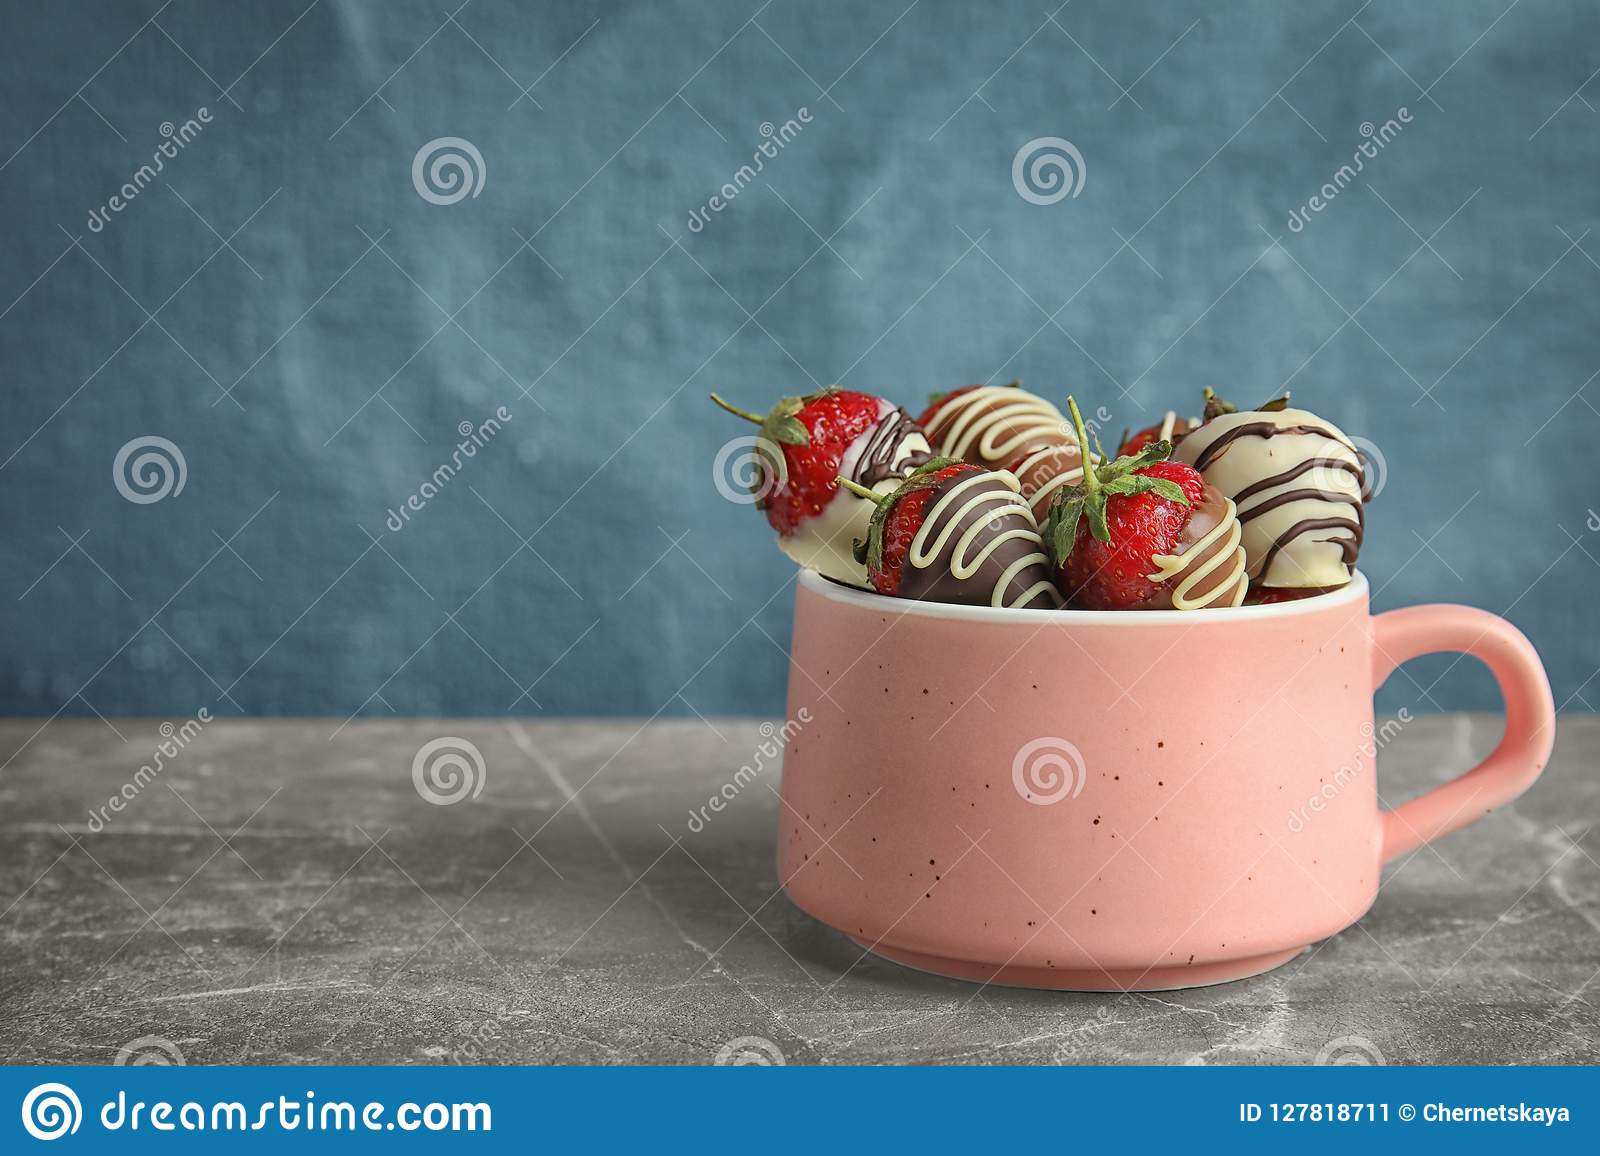 Cup with chocolate covered strawberries